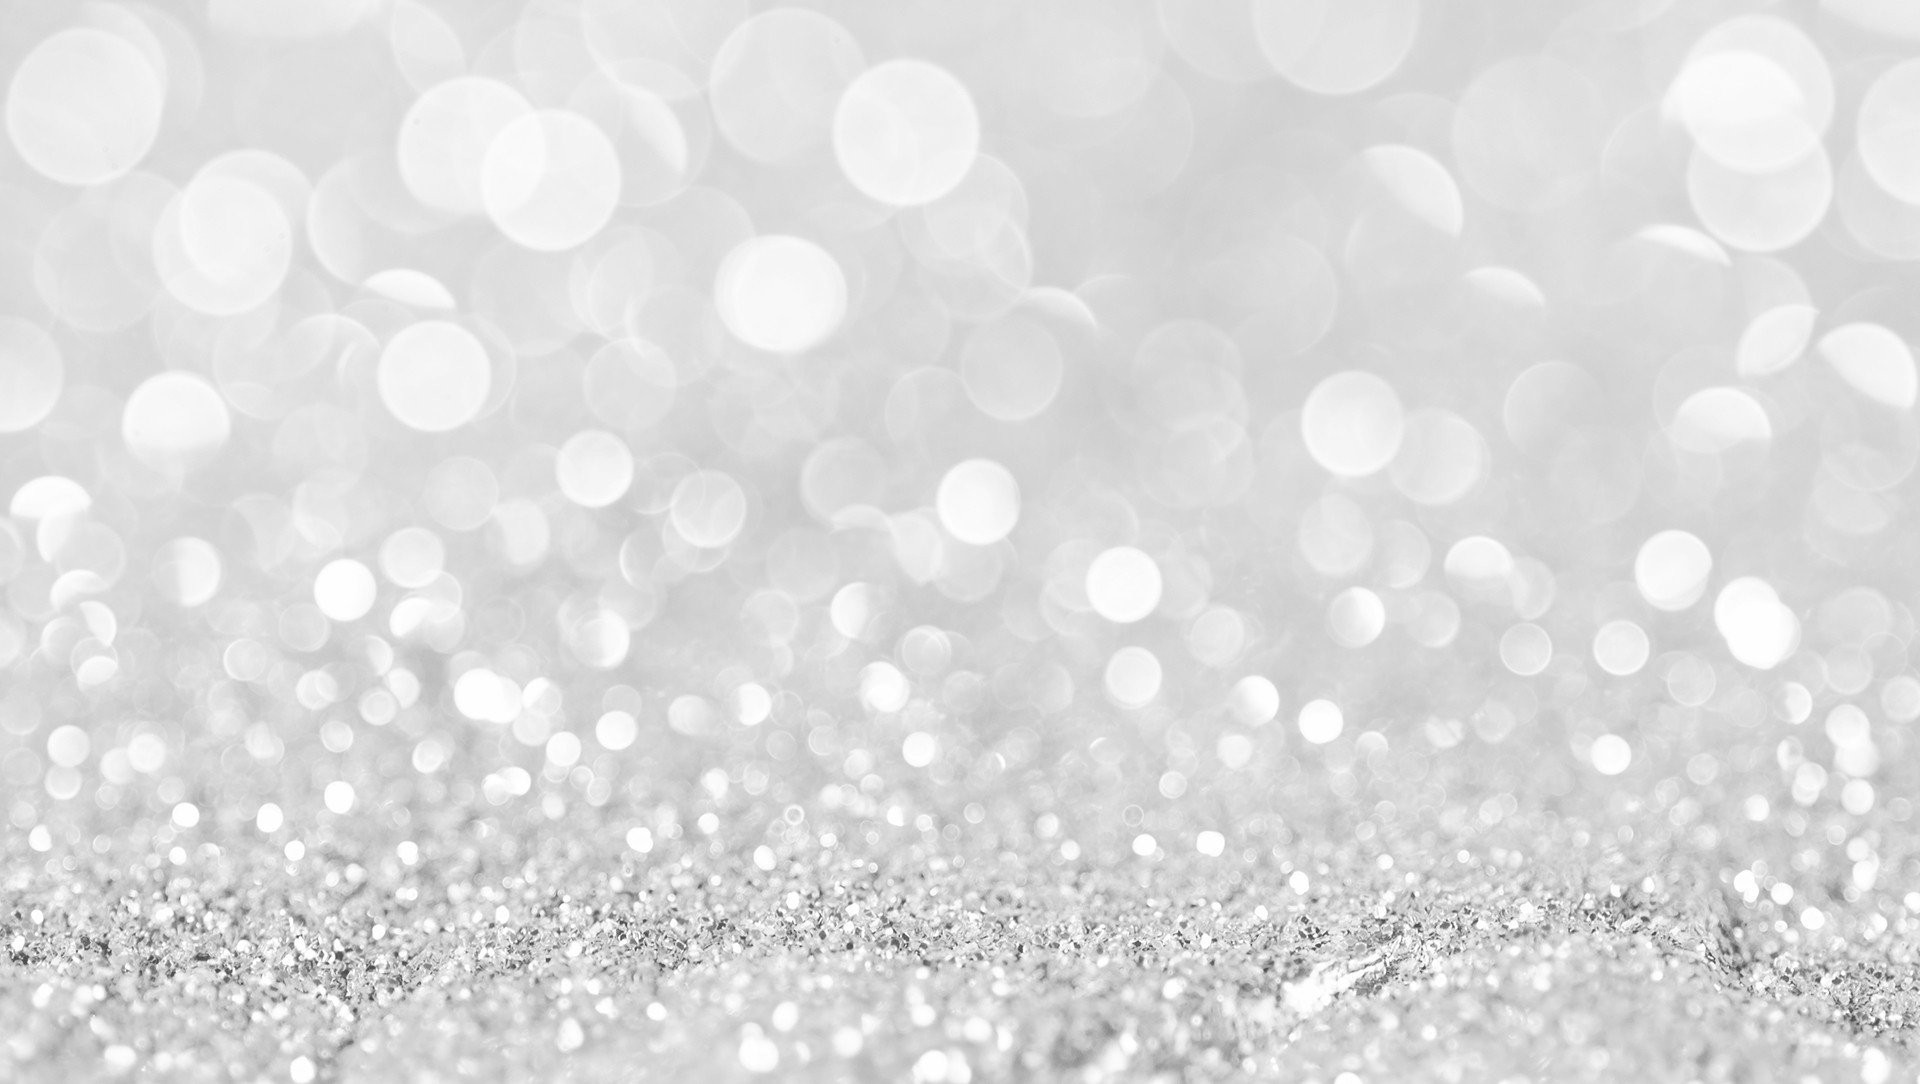 Hd Glitter Wallpaper 79 Images